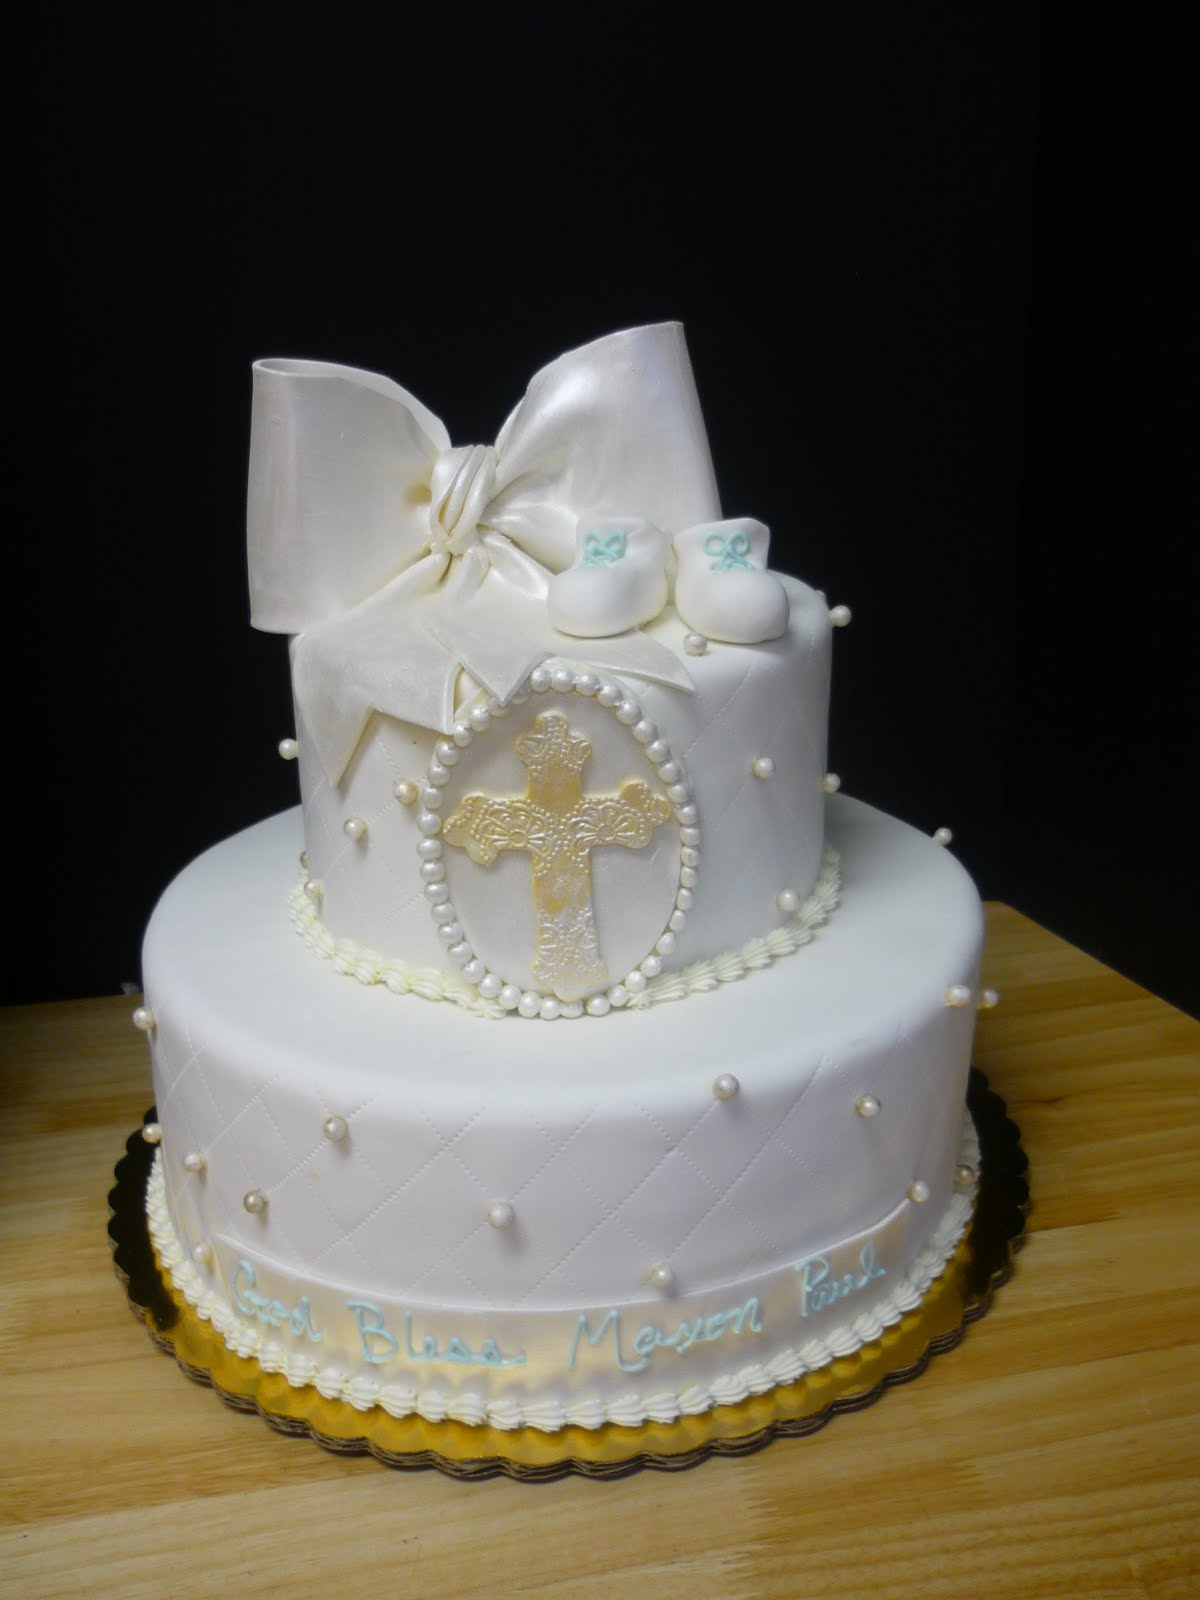 Images Of Cake For Christening : Artisan Bake Shop: Christening, Baptism, First Communion Cakes